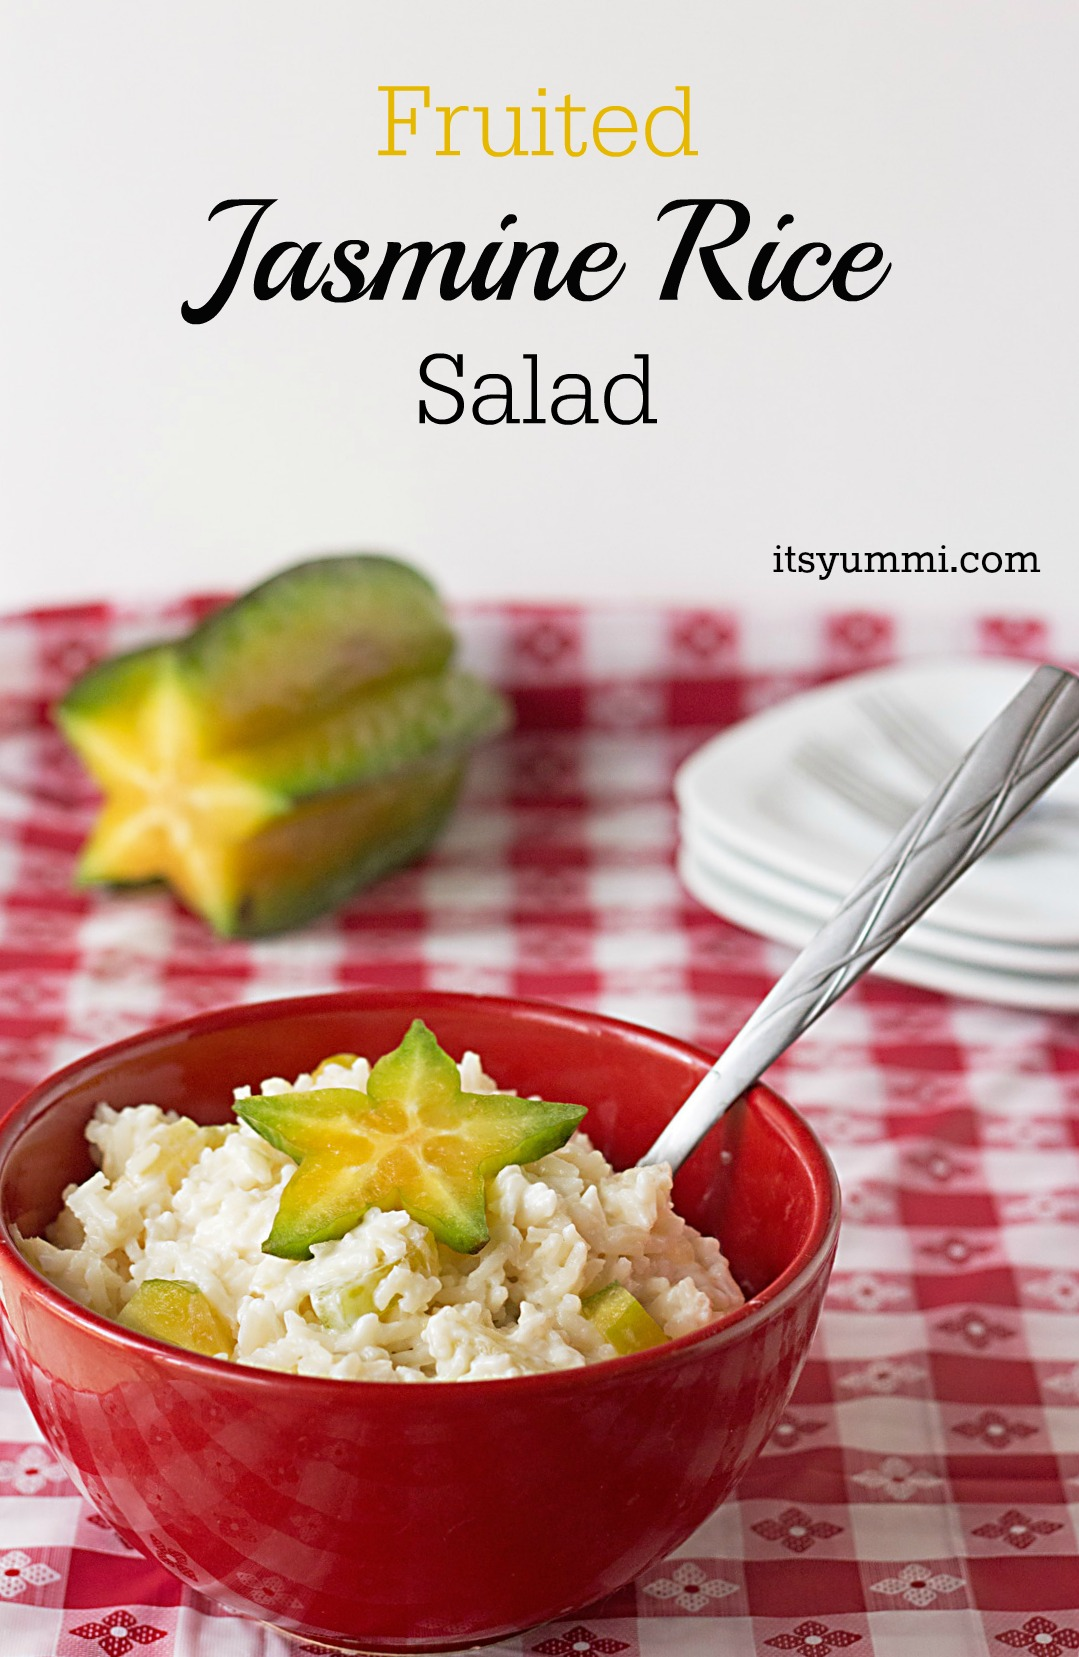 Fruited Jasmine Rice Salad from ItsYummi.com {5 Ingredient Recipe}